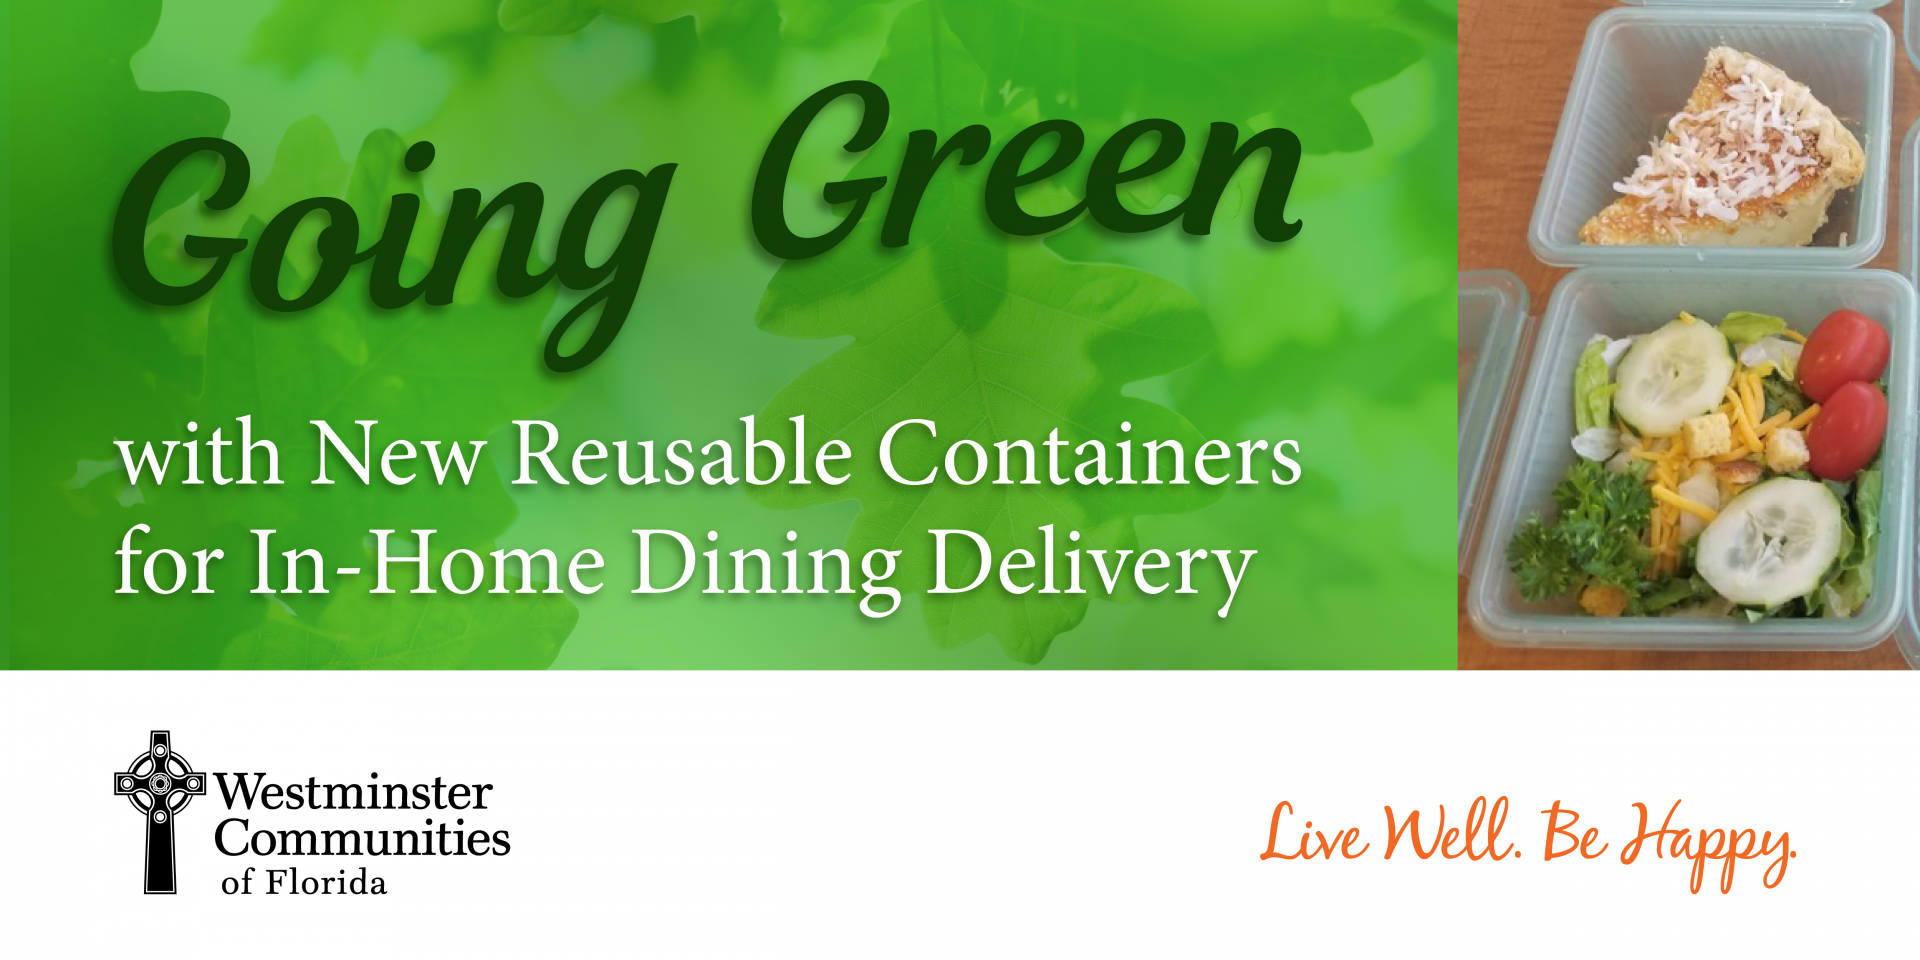 Going Green with New Reusable Containers for In-Home Dining Delivery